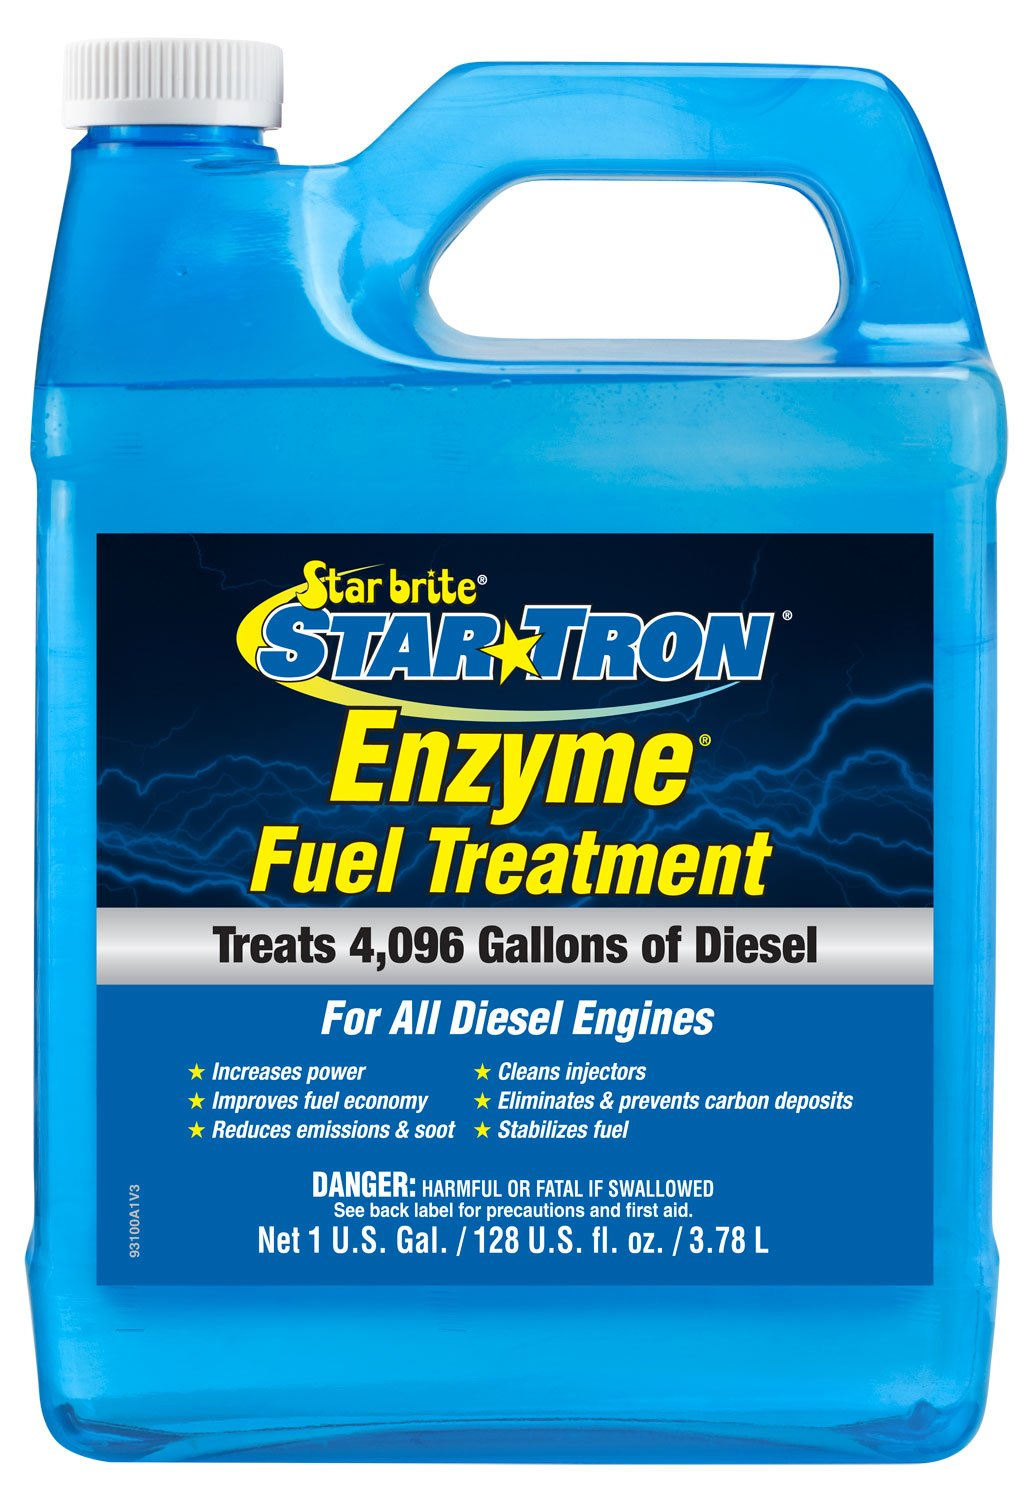 Star brite 093100N Concentrated Diesel Formula 931 Tron Enzyme Fuel Treatment, 1 Gallon by Star Brite